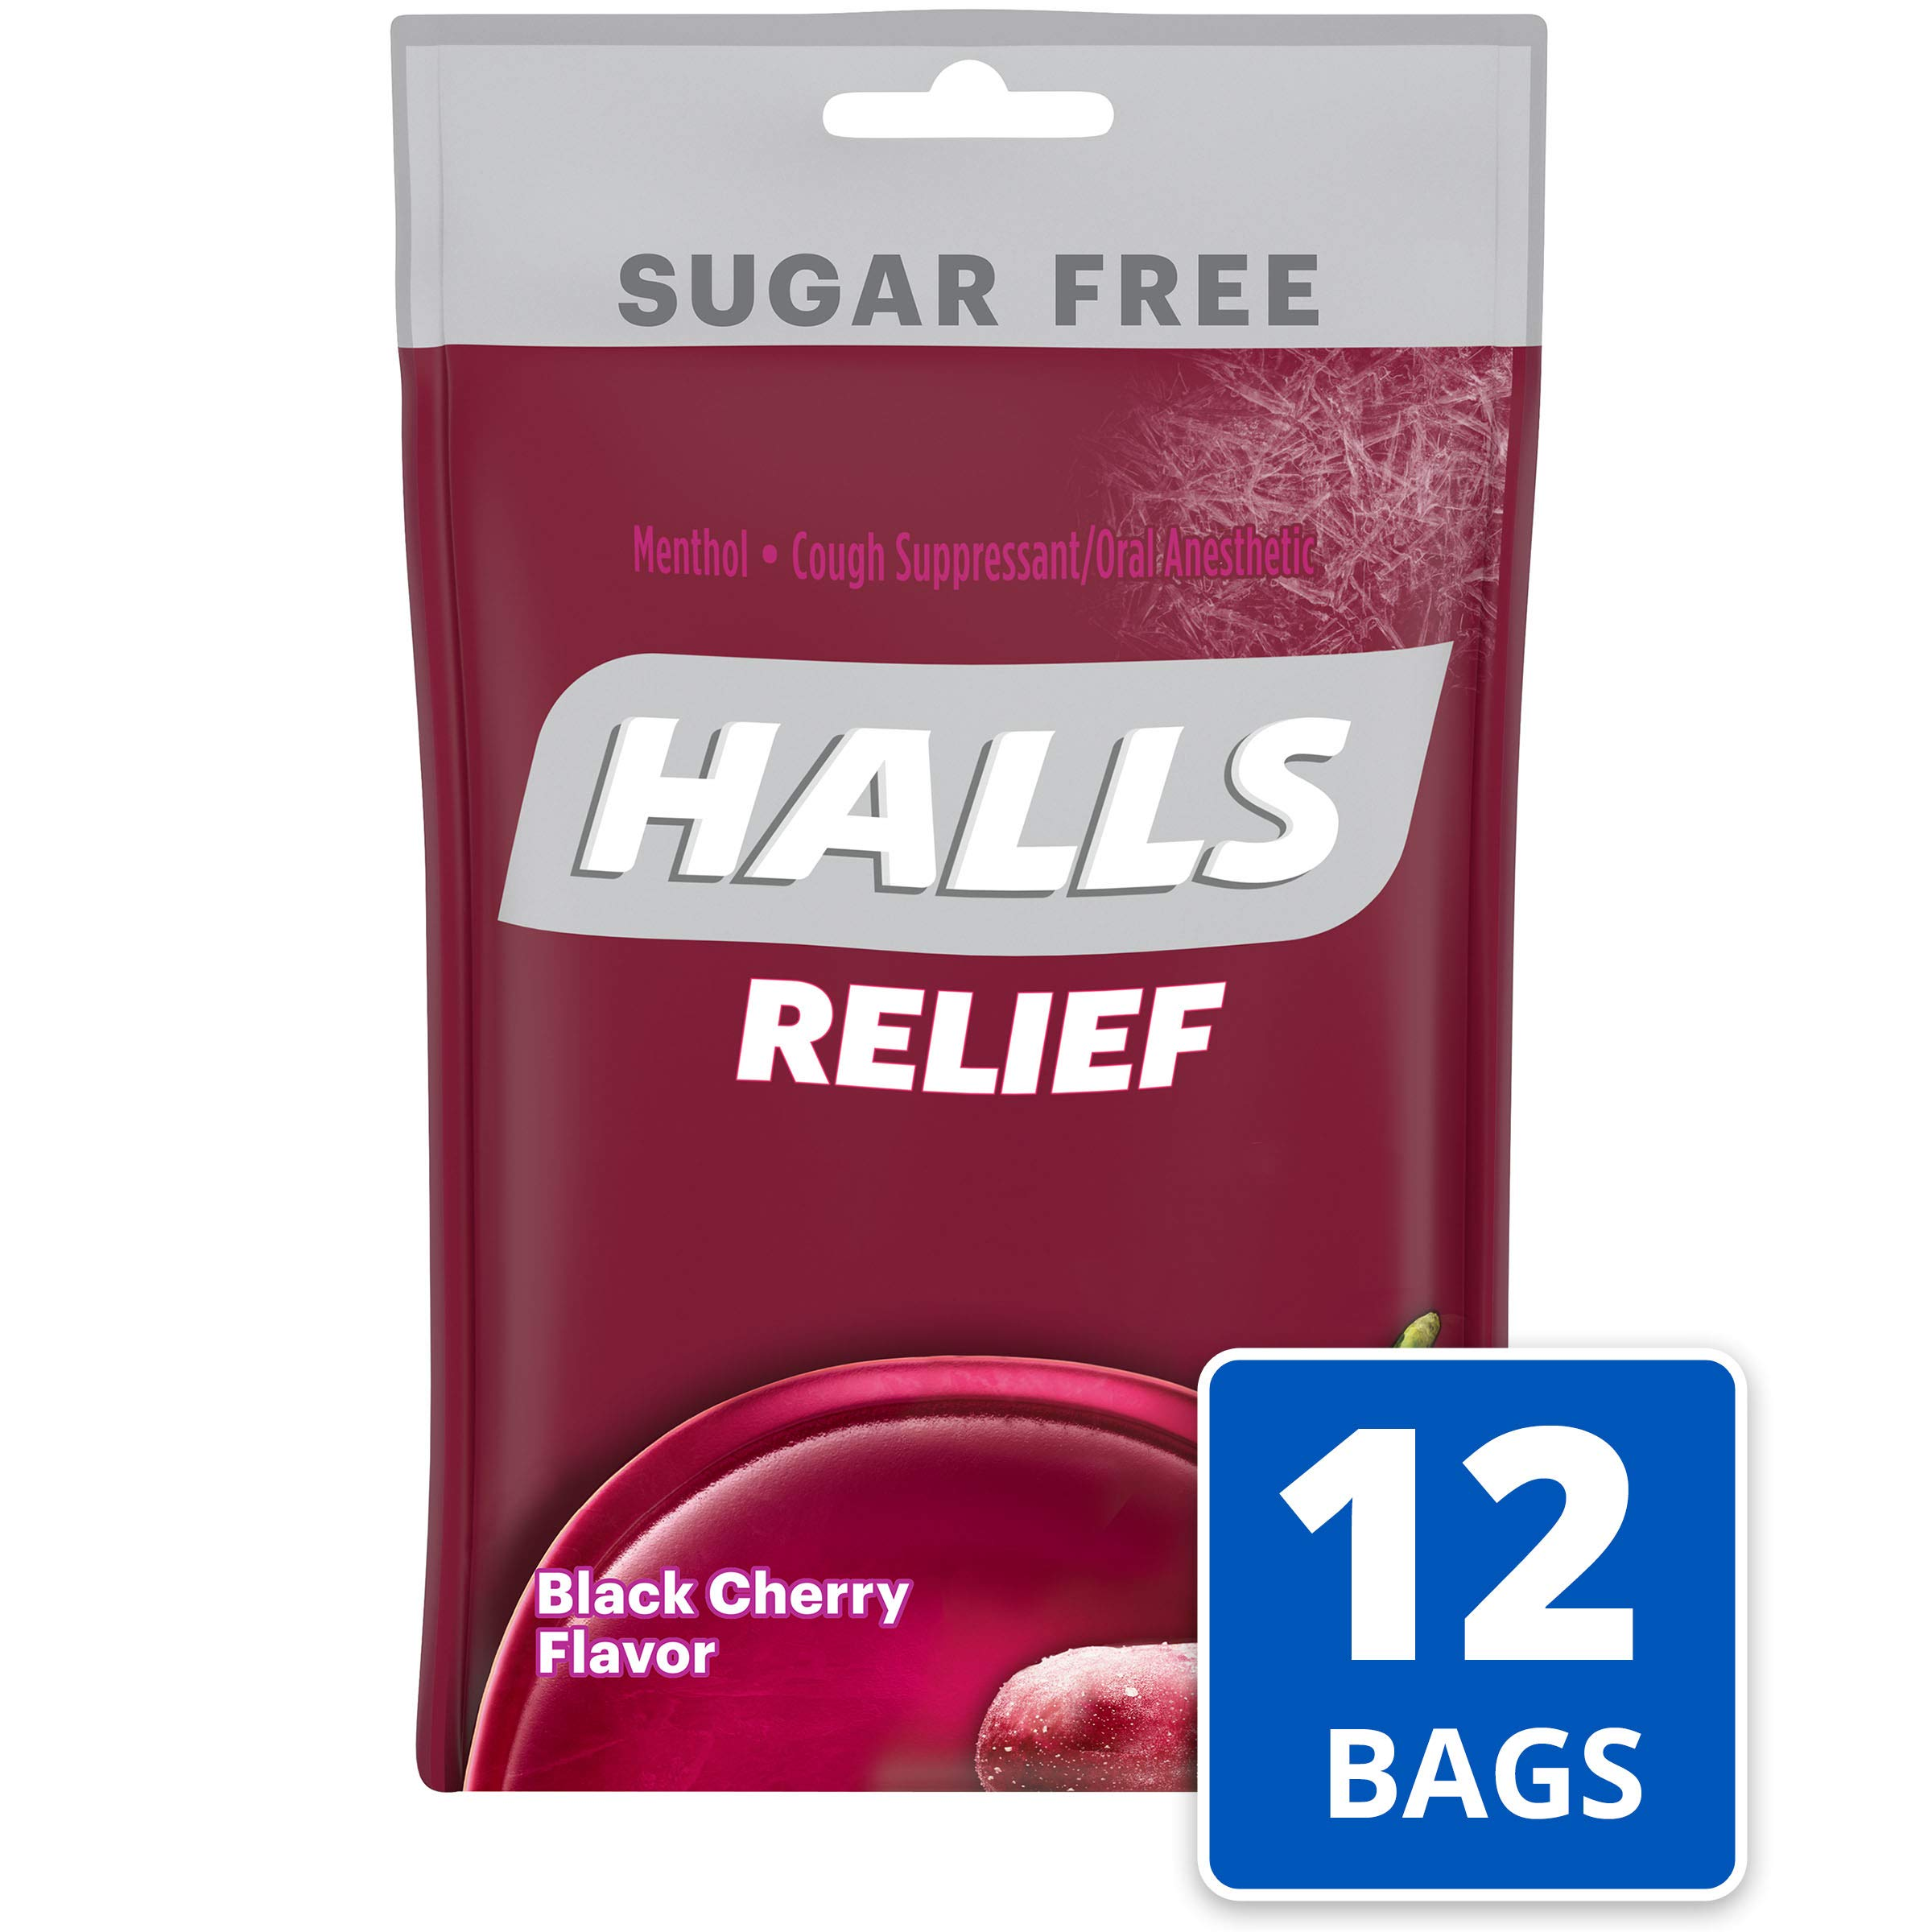 Halls Black Cherry Sugar Free Cough Drops - with Menthol - 300 Drops (12 bags of 25 drops) by Halls